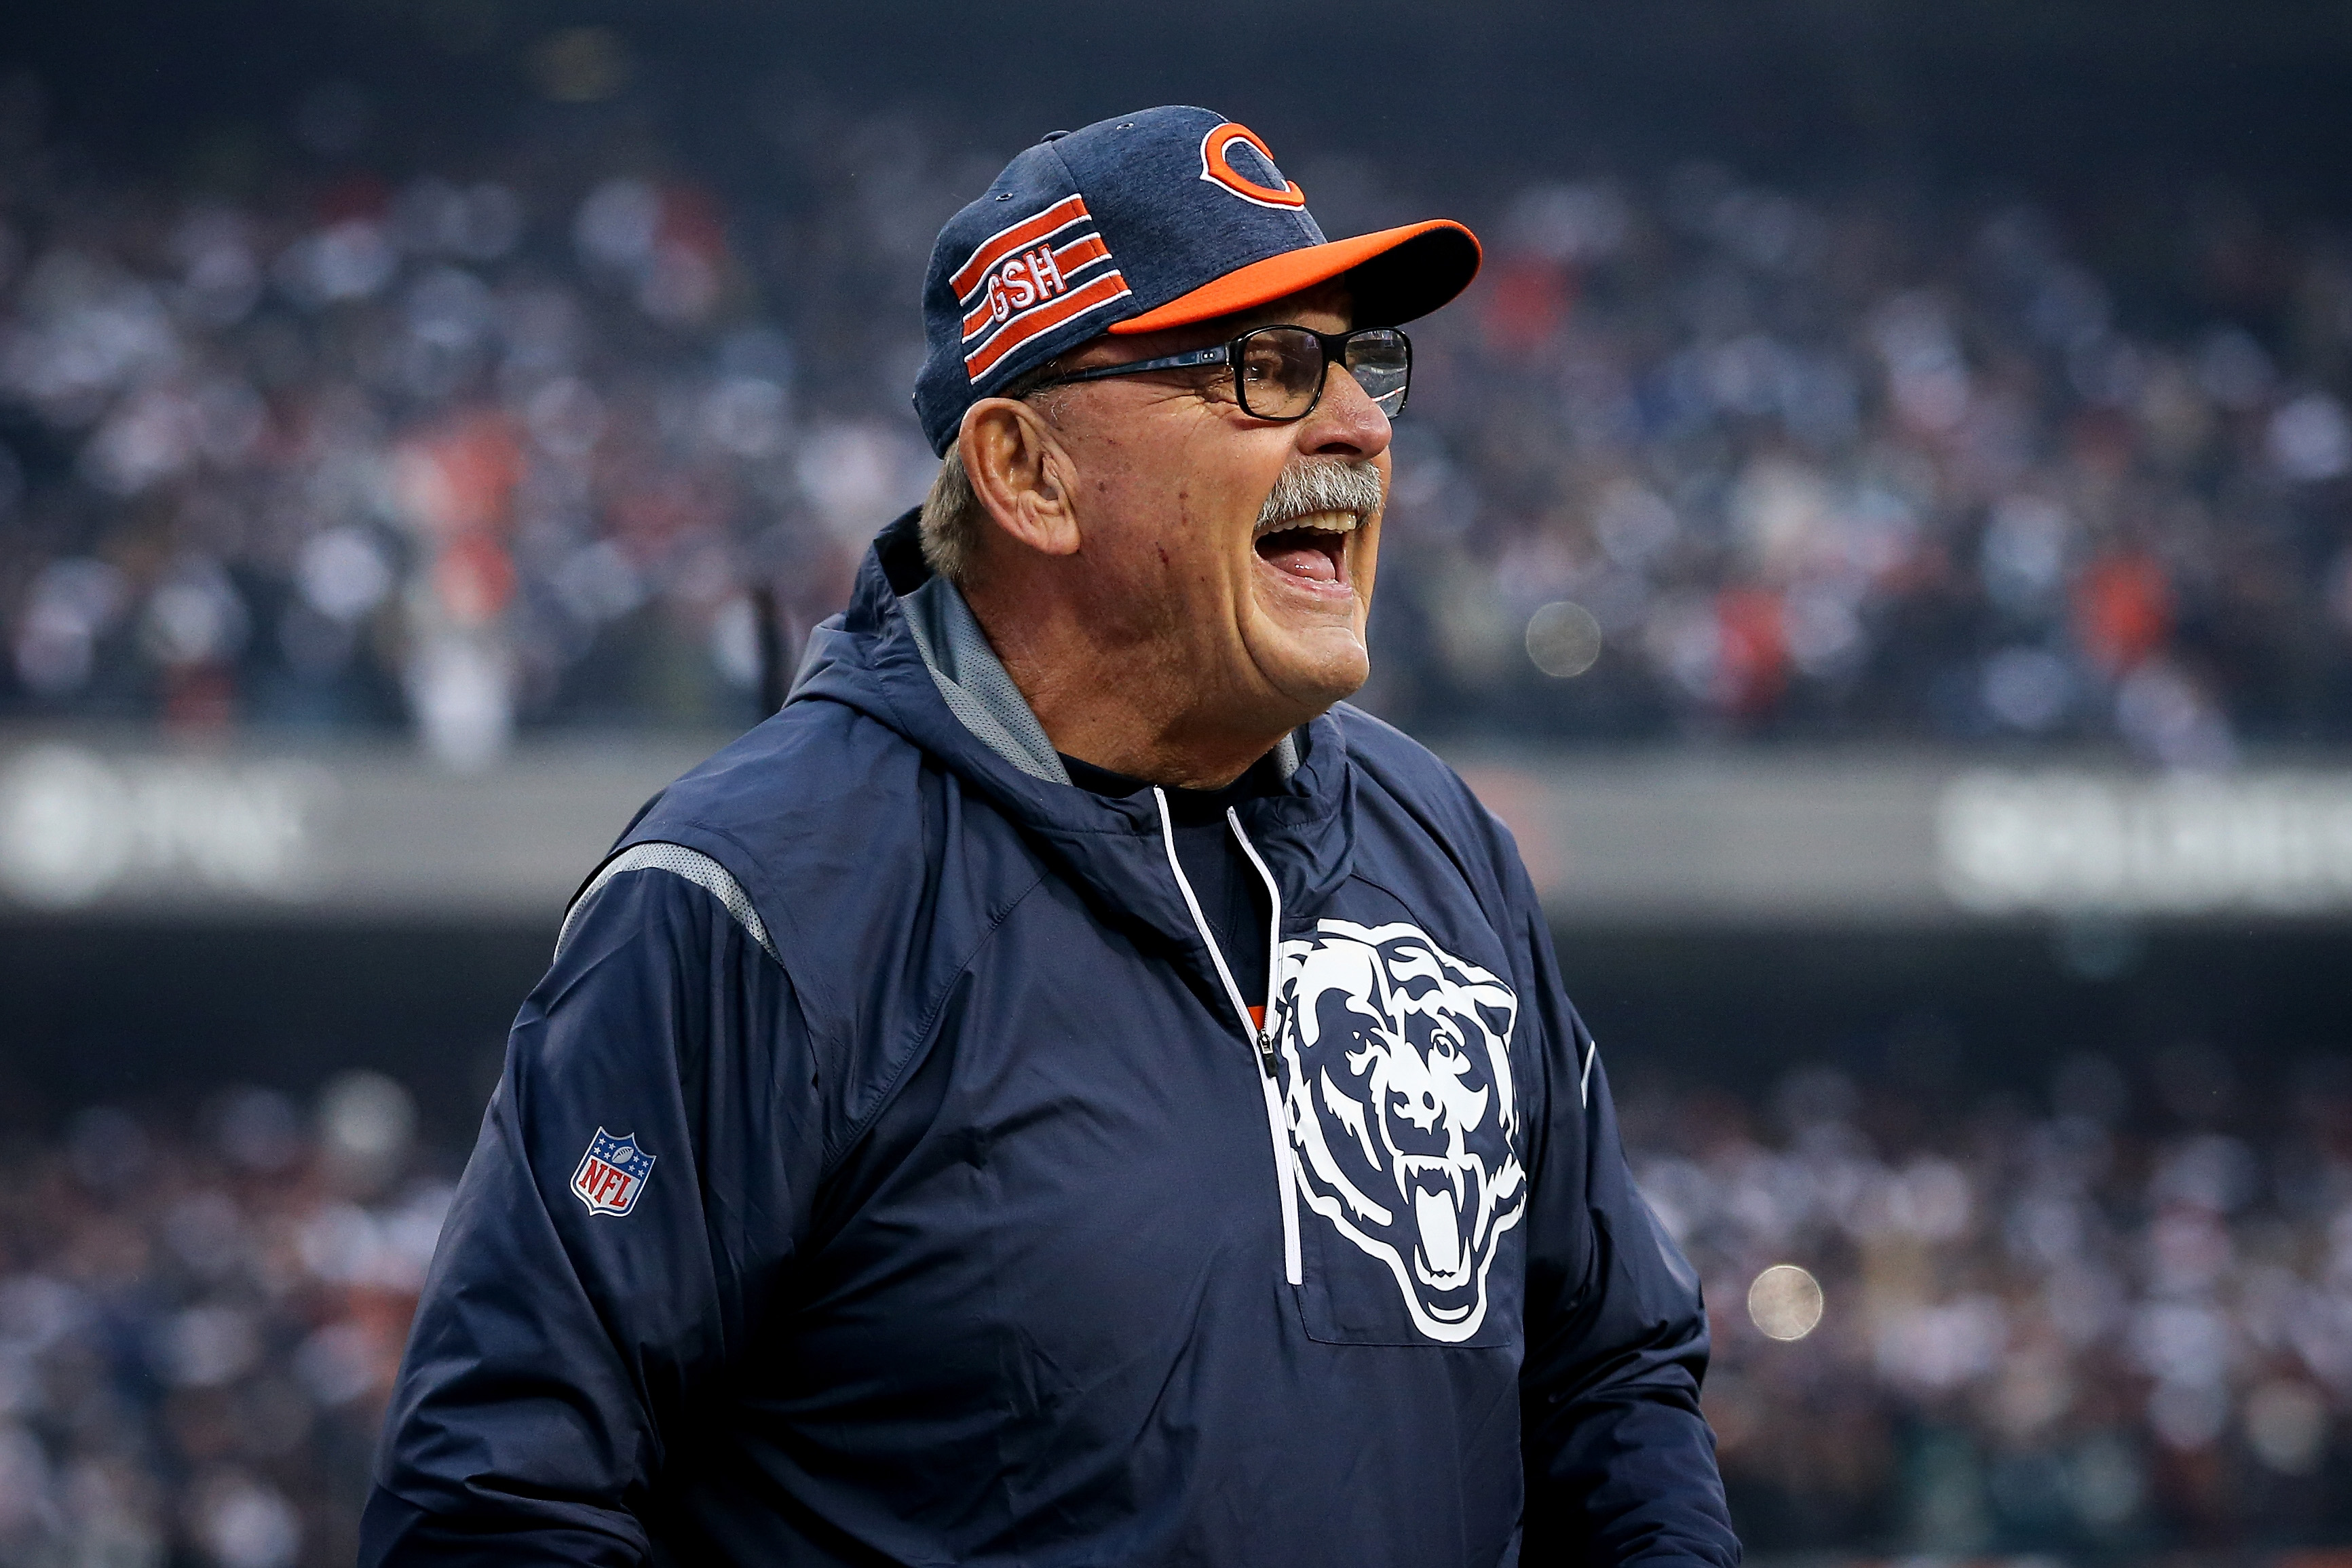 Dick Butkus watches a Bears game from the sidelines